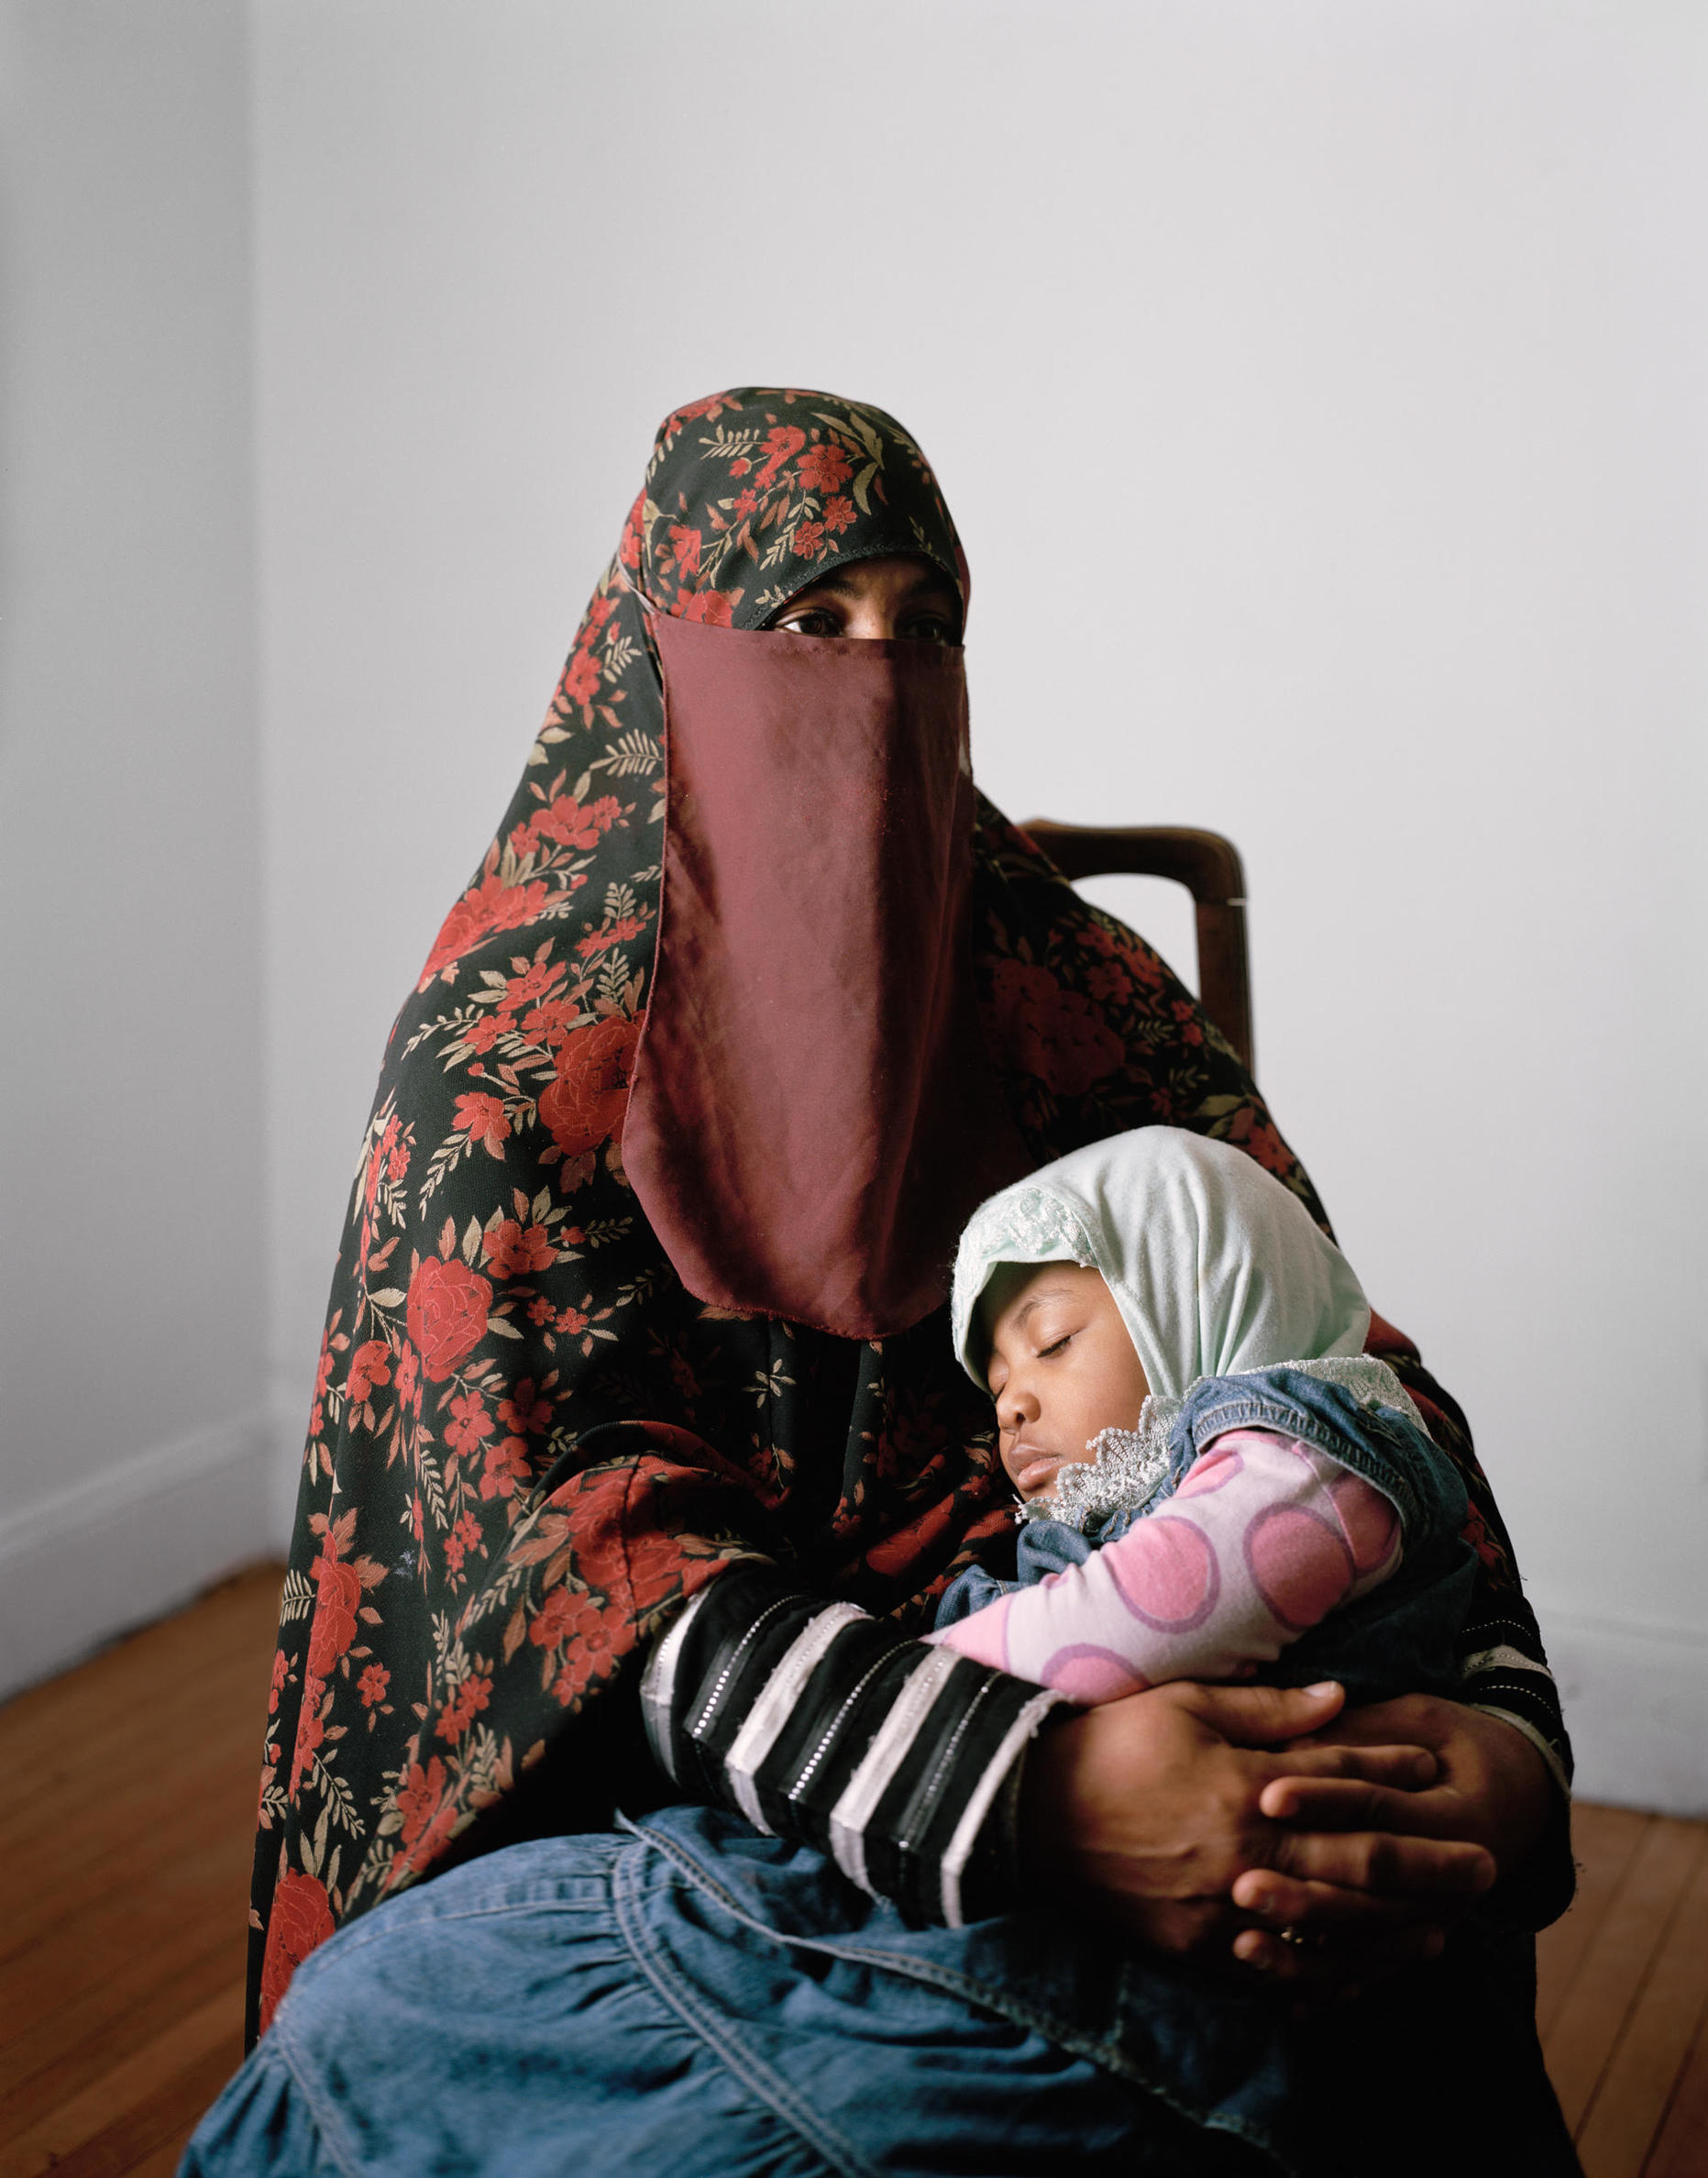 A mother with a niqab and her daughter.